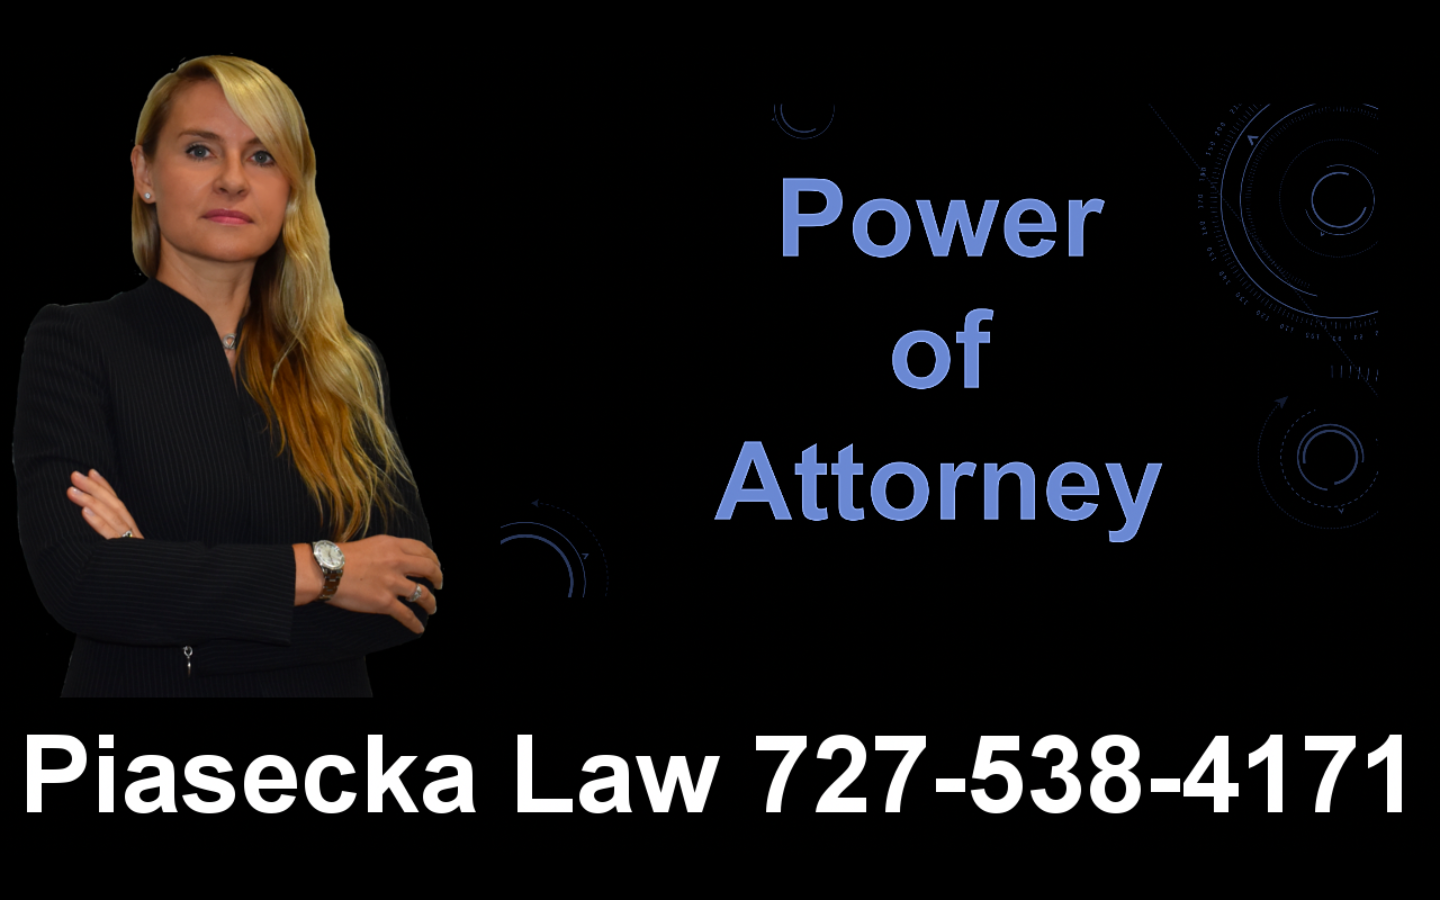 Power of Attorney, Clearwater, Florida, Lawyer, Attorney, Agnieszka, Aga, Piasecka